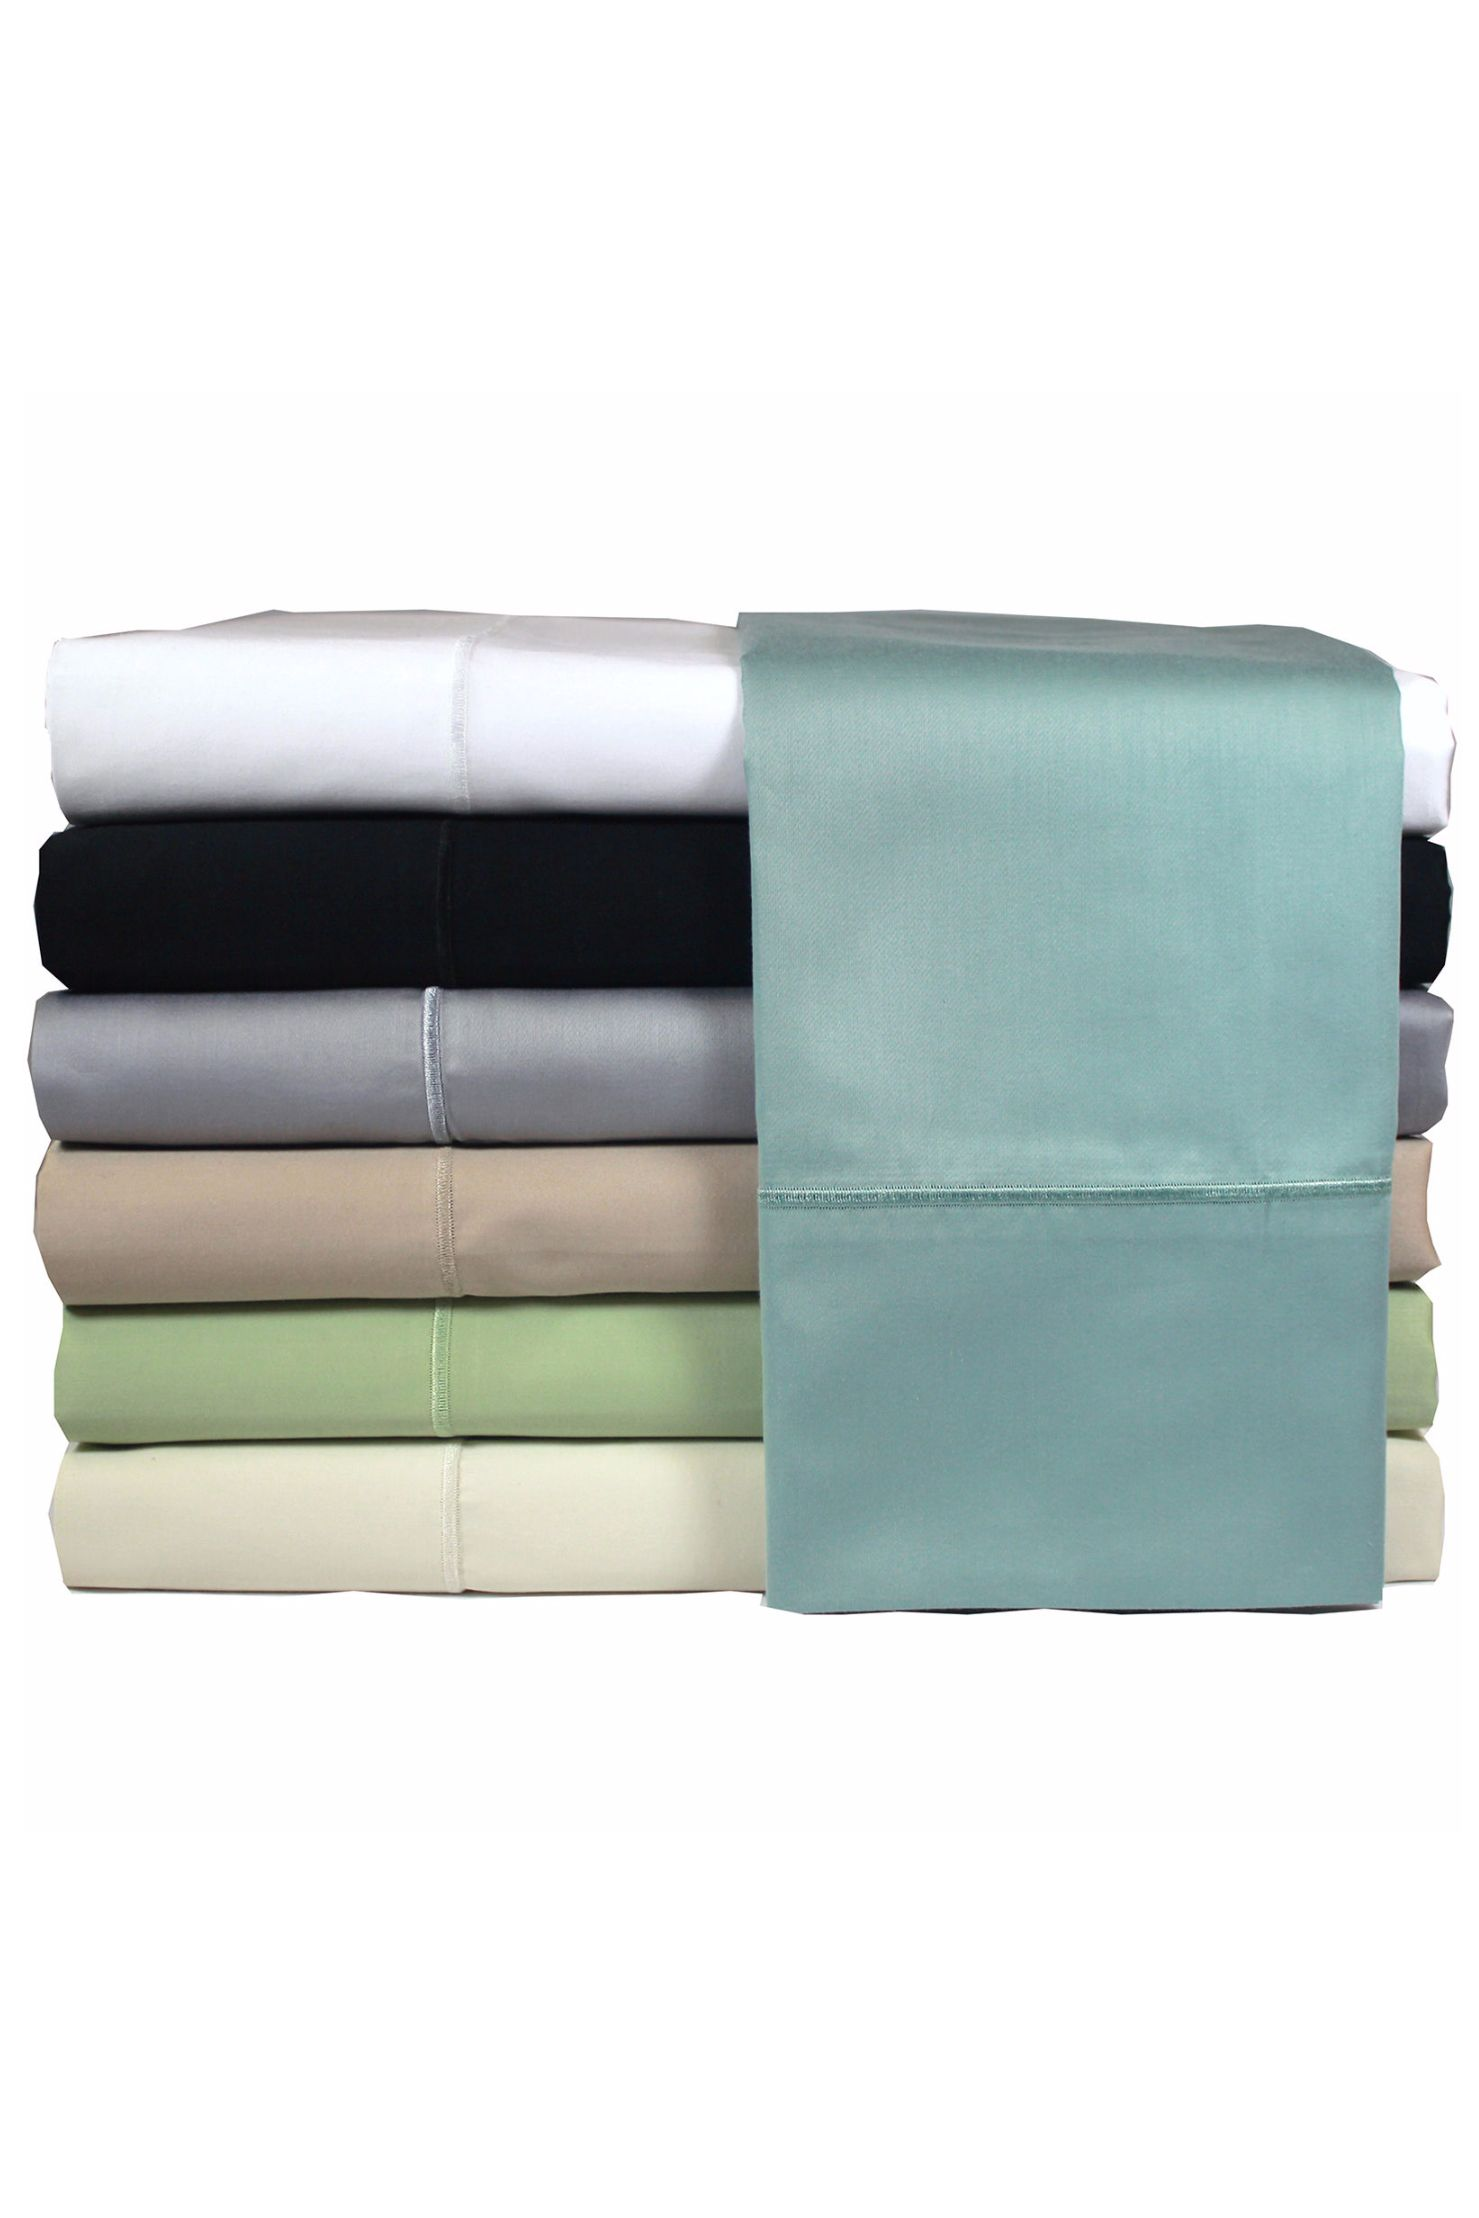 performance dry comfort hypercotton shop select brightwhite cotton sheetset hyper sheets quick comforter